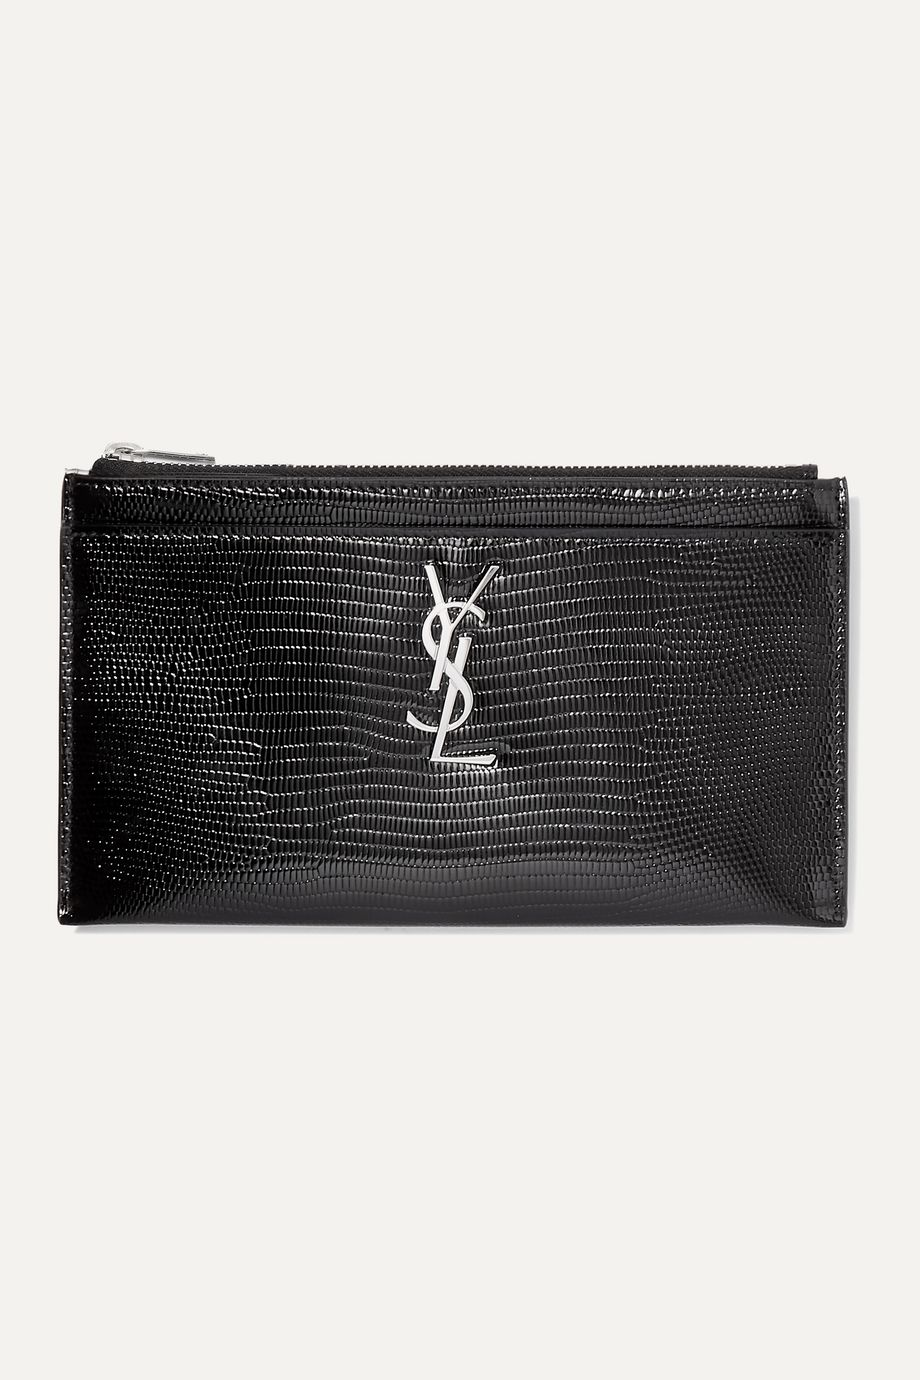 SAINT LAURENT Lizard-effect glossed-leather wallet